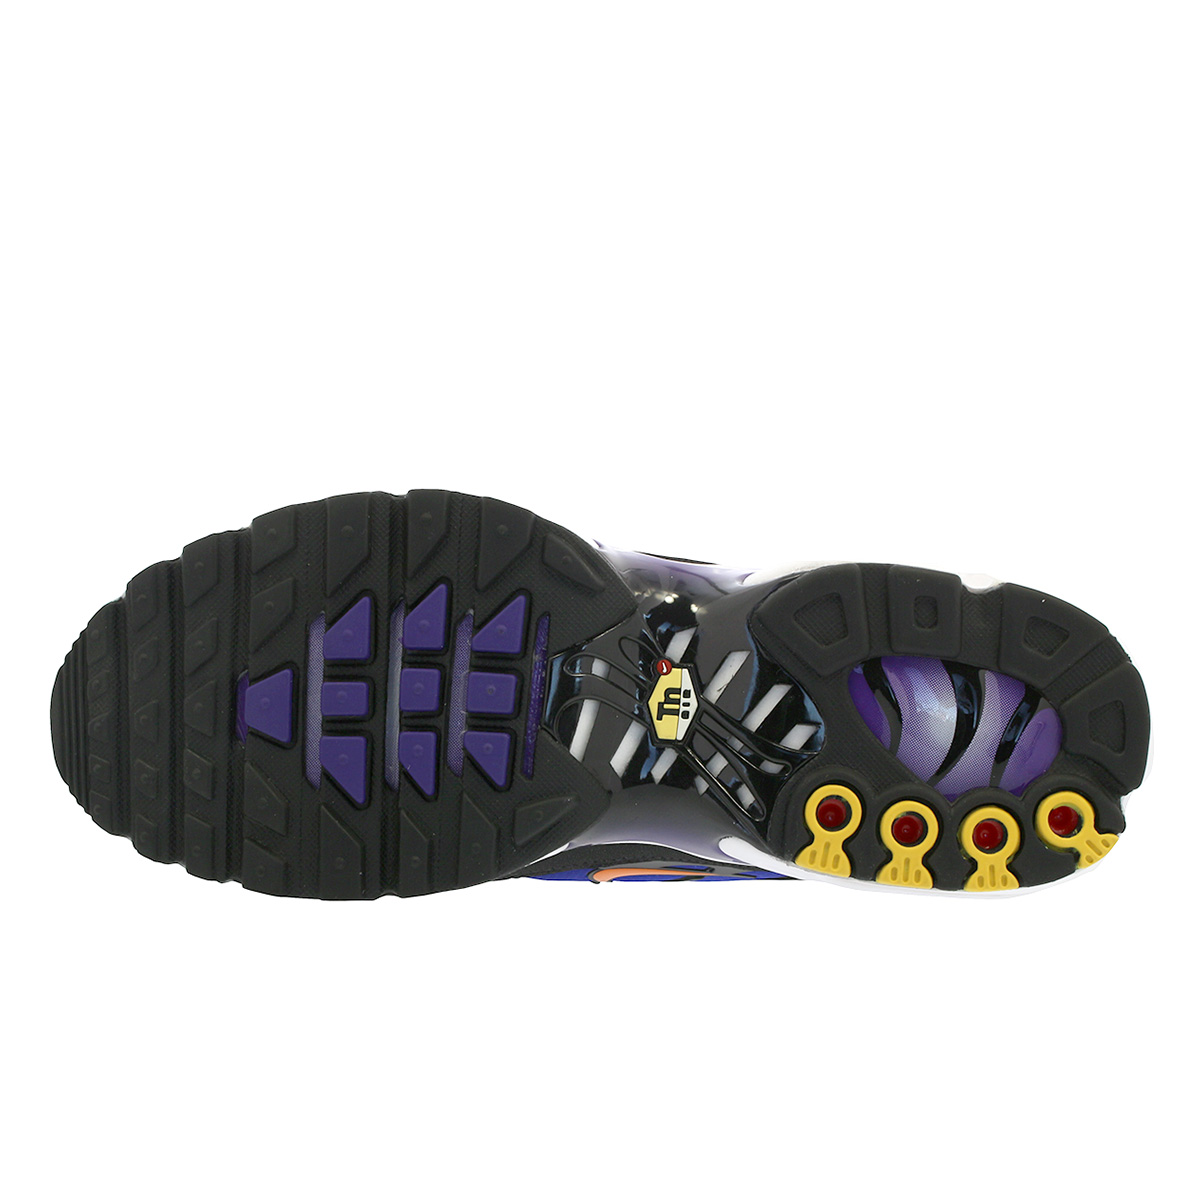 reputable site e1de7 6da94 NIKE AIR MAX PLUS OG Kie Ney AMAX plus OG BLACK/TOTAL ORANGE/VOLTAGE PURPLE